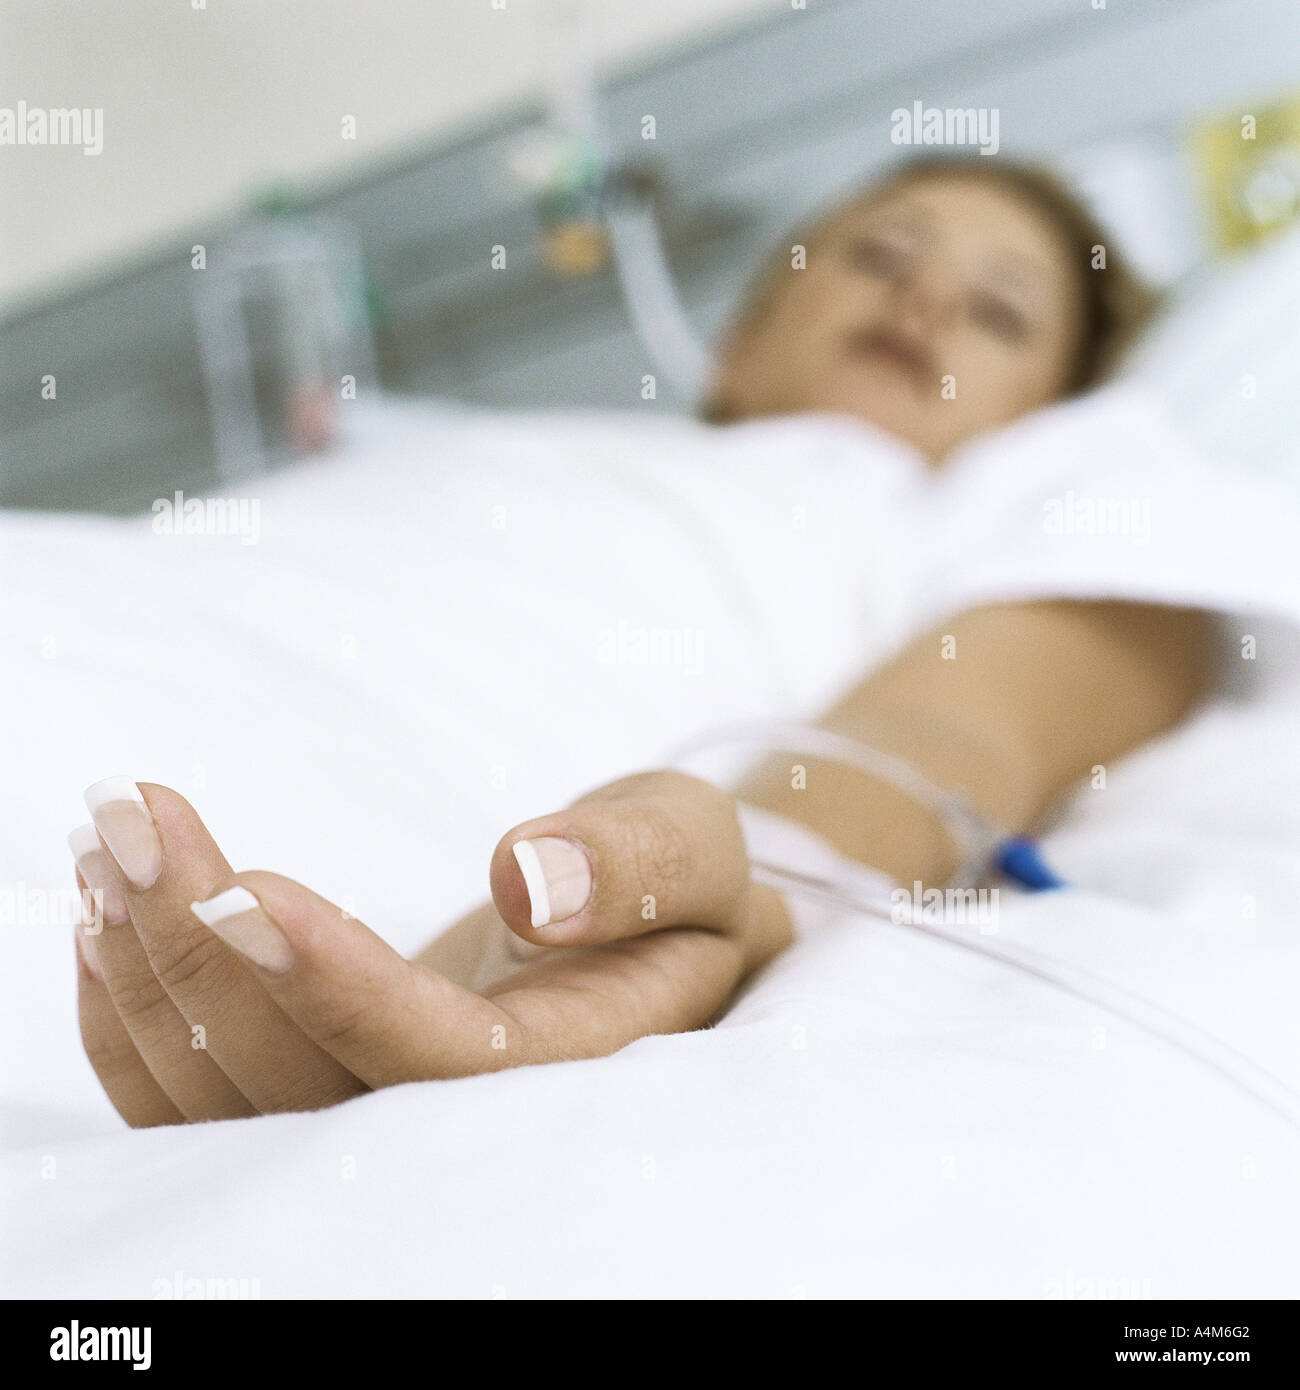 Female patient lying in hospital bed - Stock Image